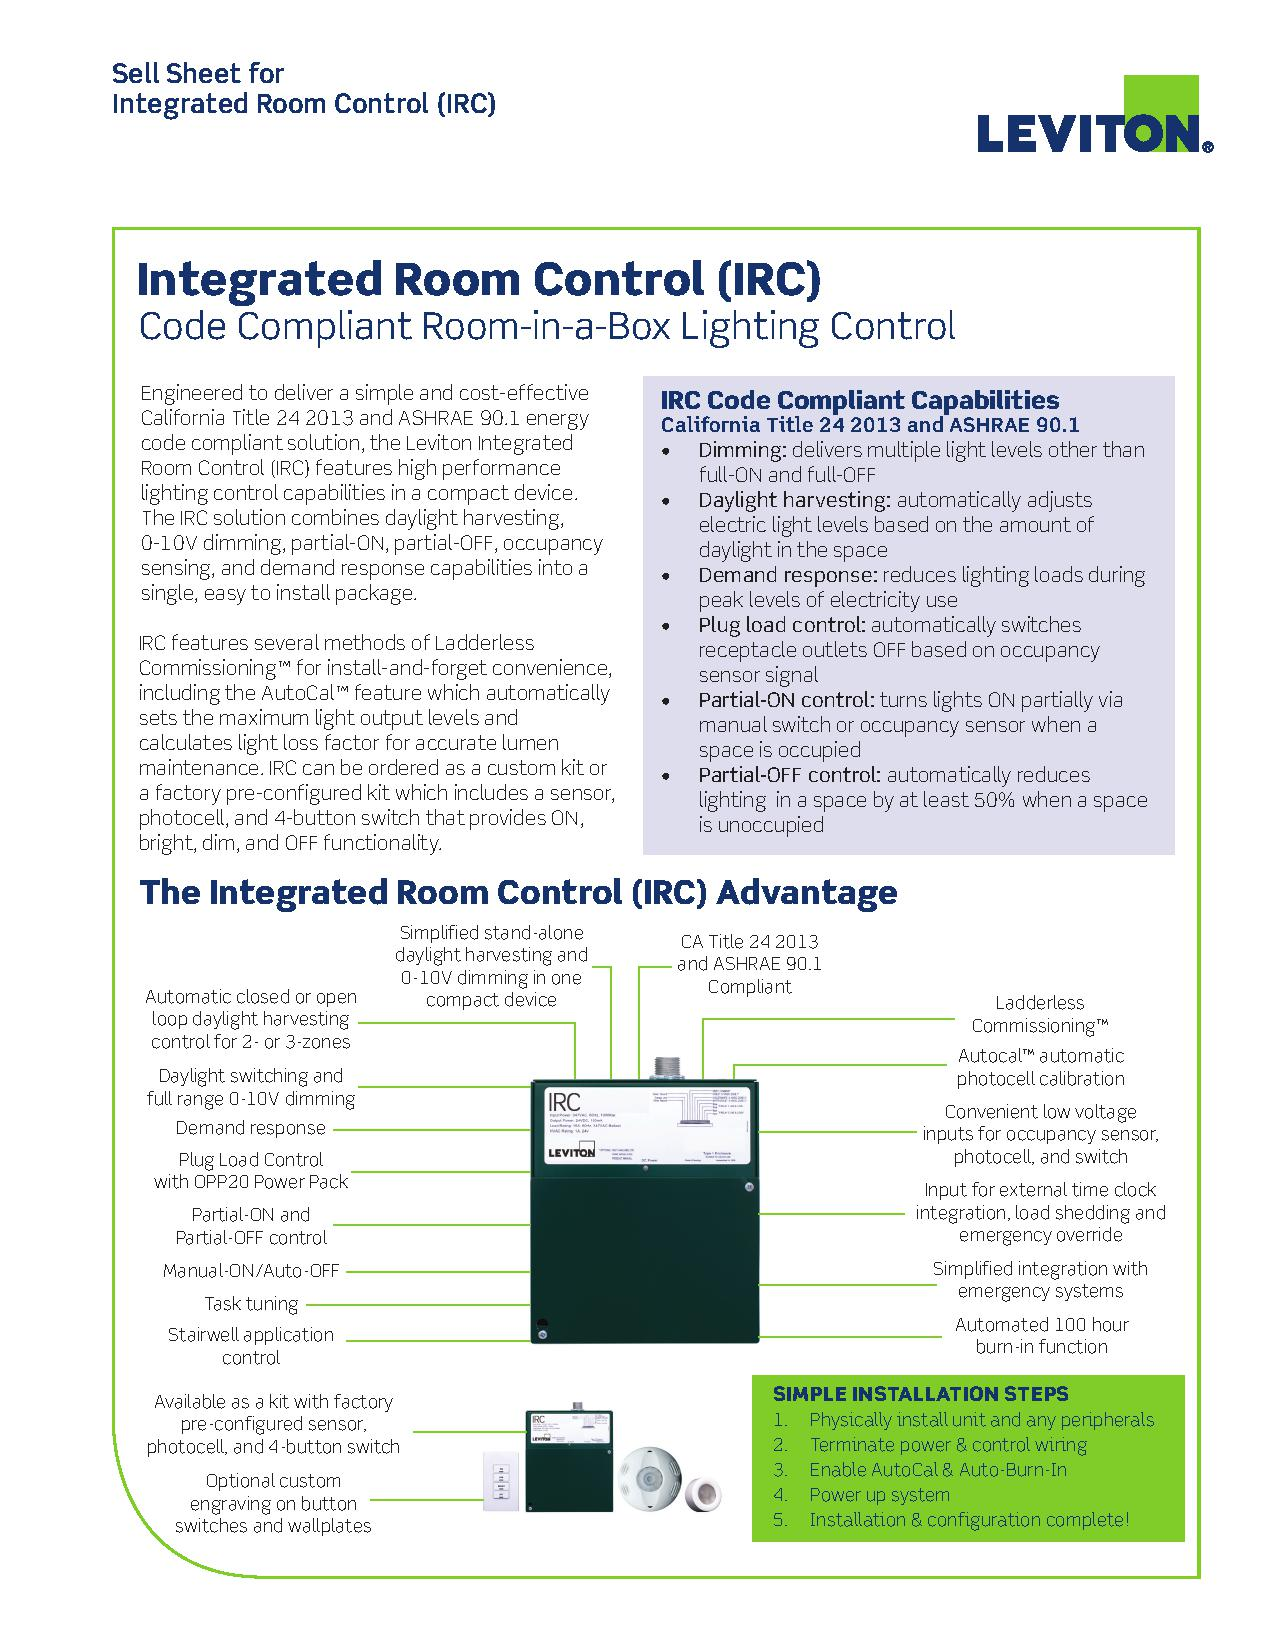 Leviton Integrated Room Control Kit-Lighting and Receptacle Control ...